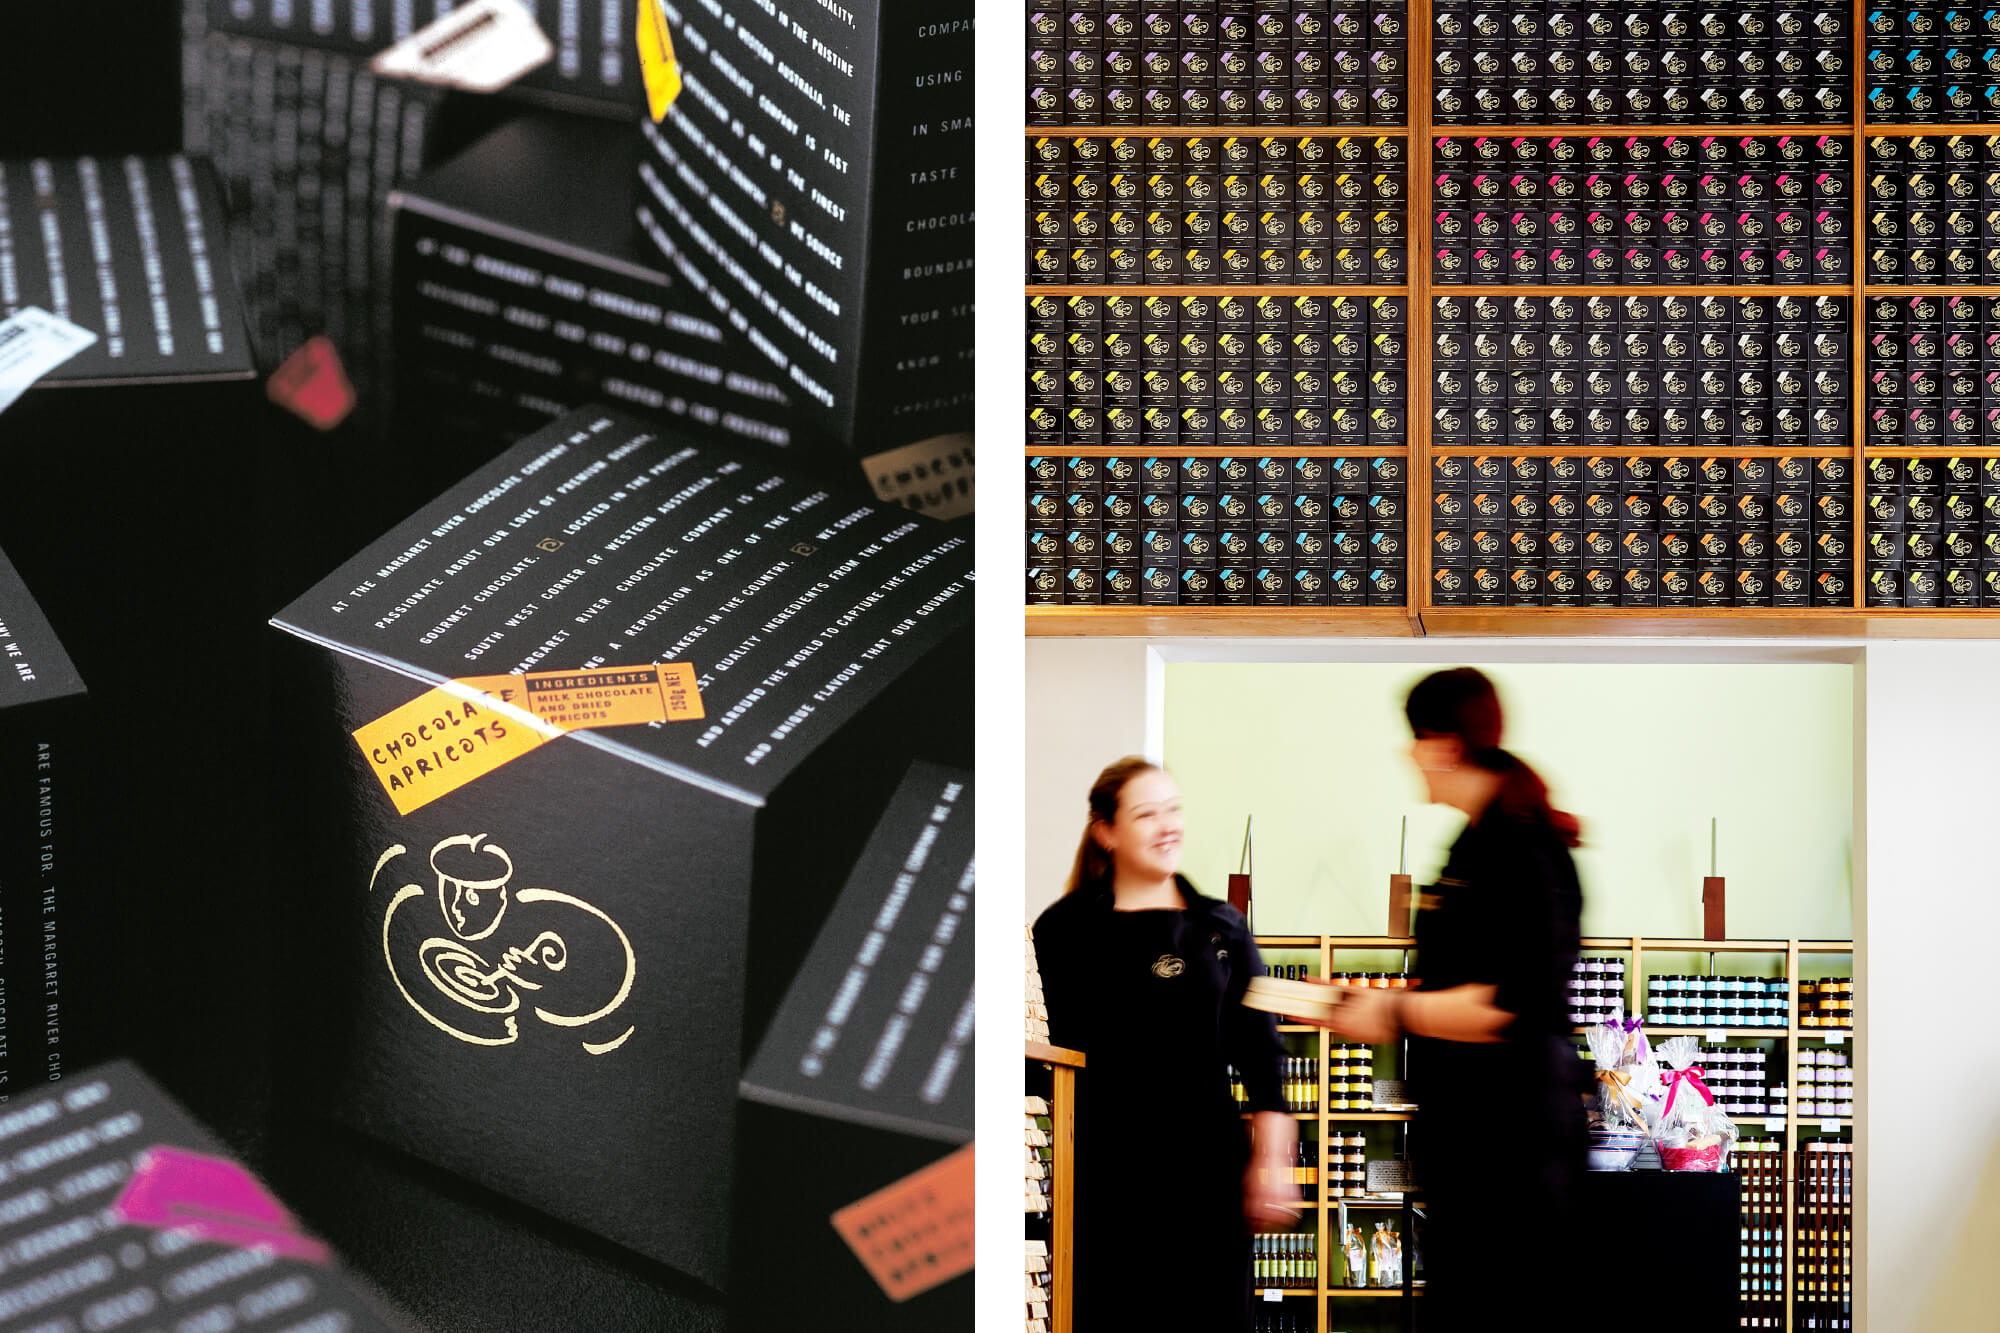 margaret_river_chocolate_company_store